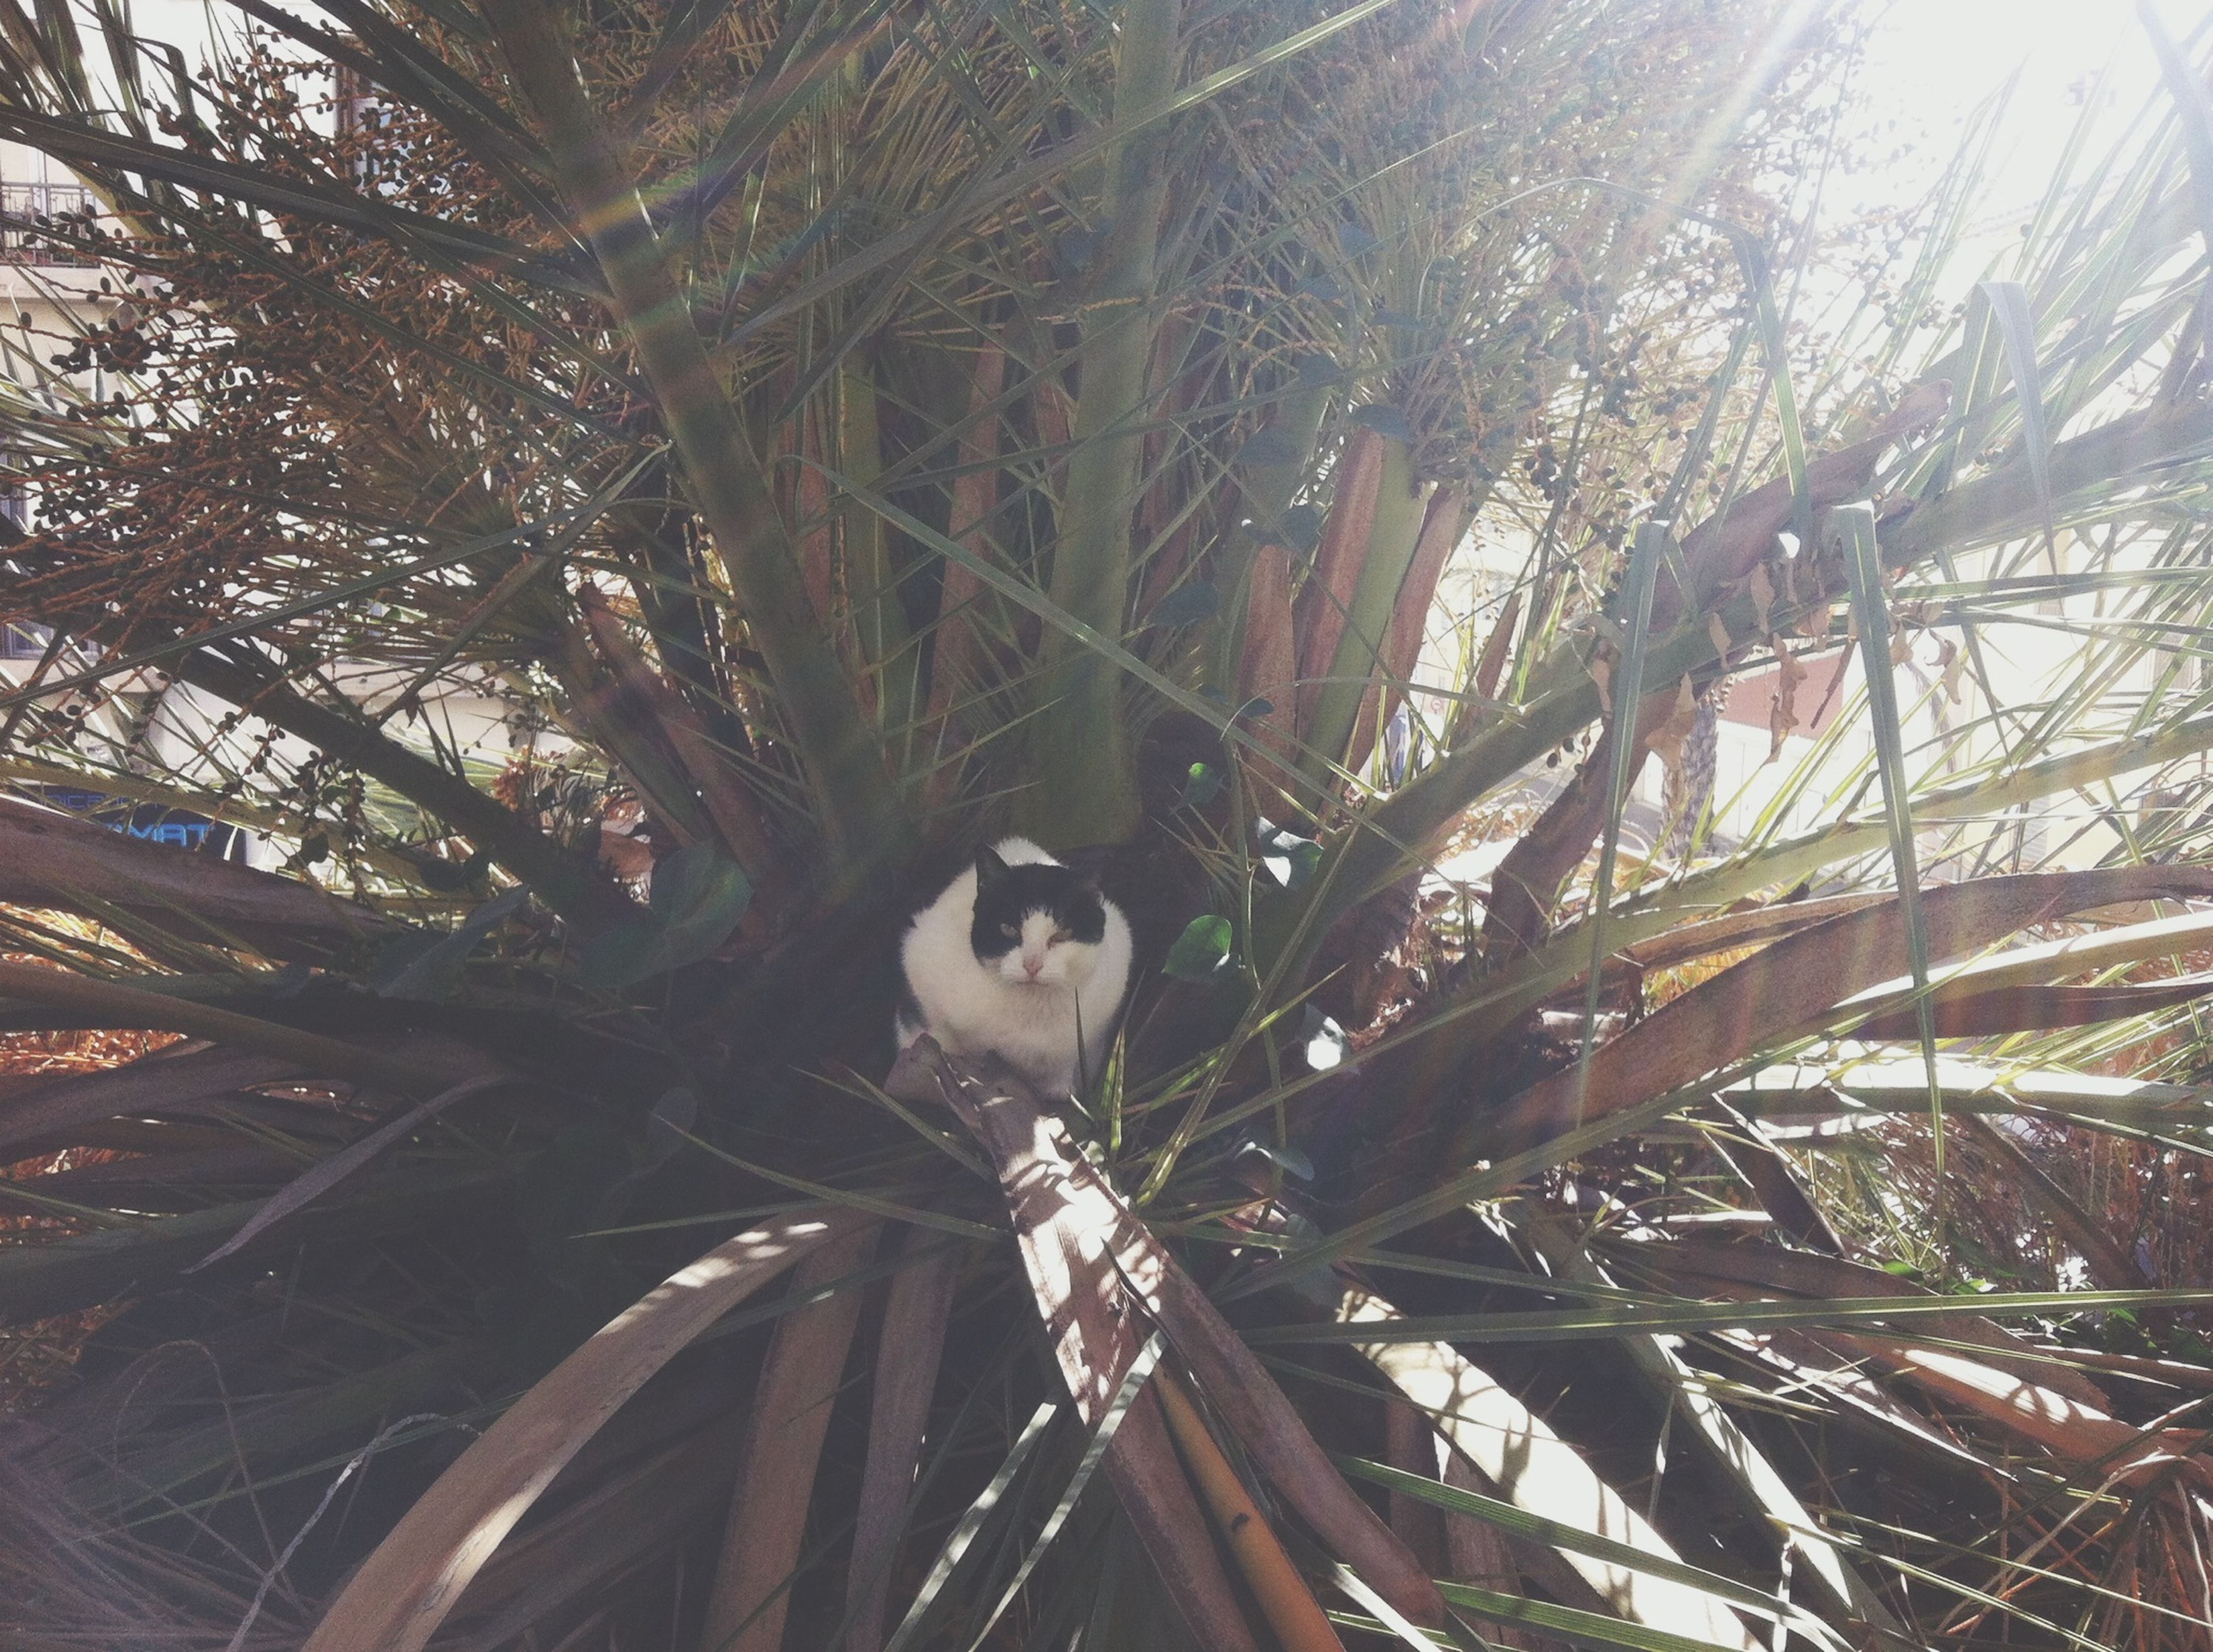 tree, low angle view, one animal, branch, animal themes, tree trunk, looking at camera, growth, day, sunlight, nature, portrait, outdoors, mammal, front view, palm tree, one person, forest, sky